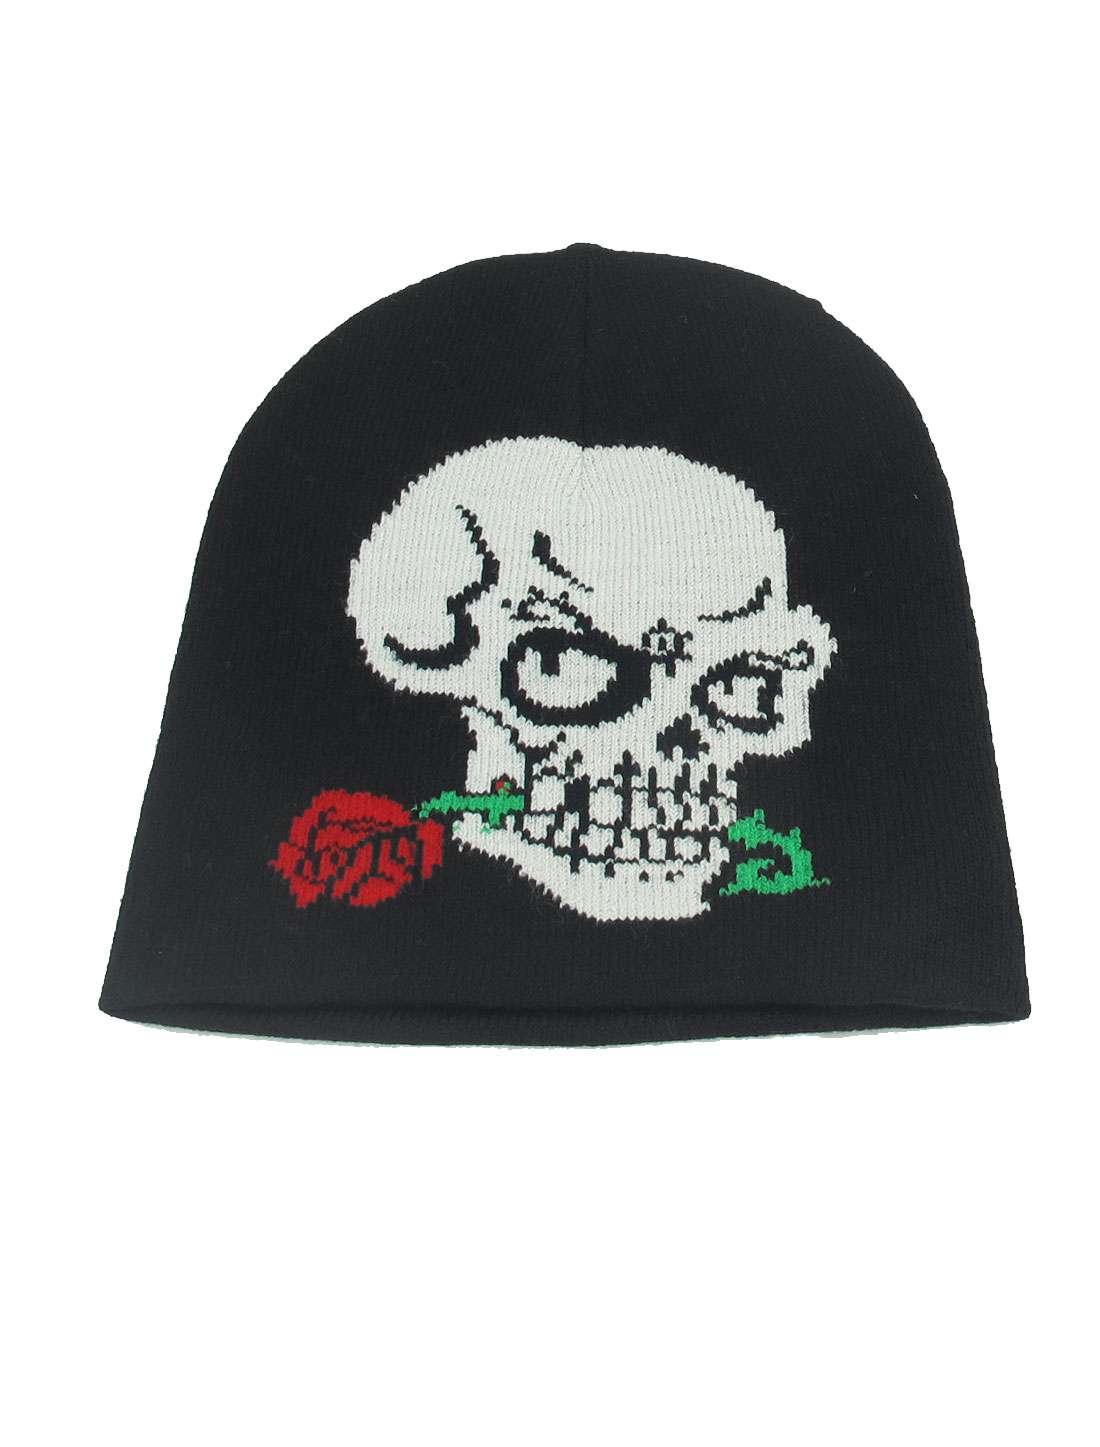 Black White Skull Print Elastic Kniting Warm Winter Beanie Hat Cap for Men Lady